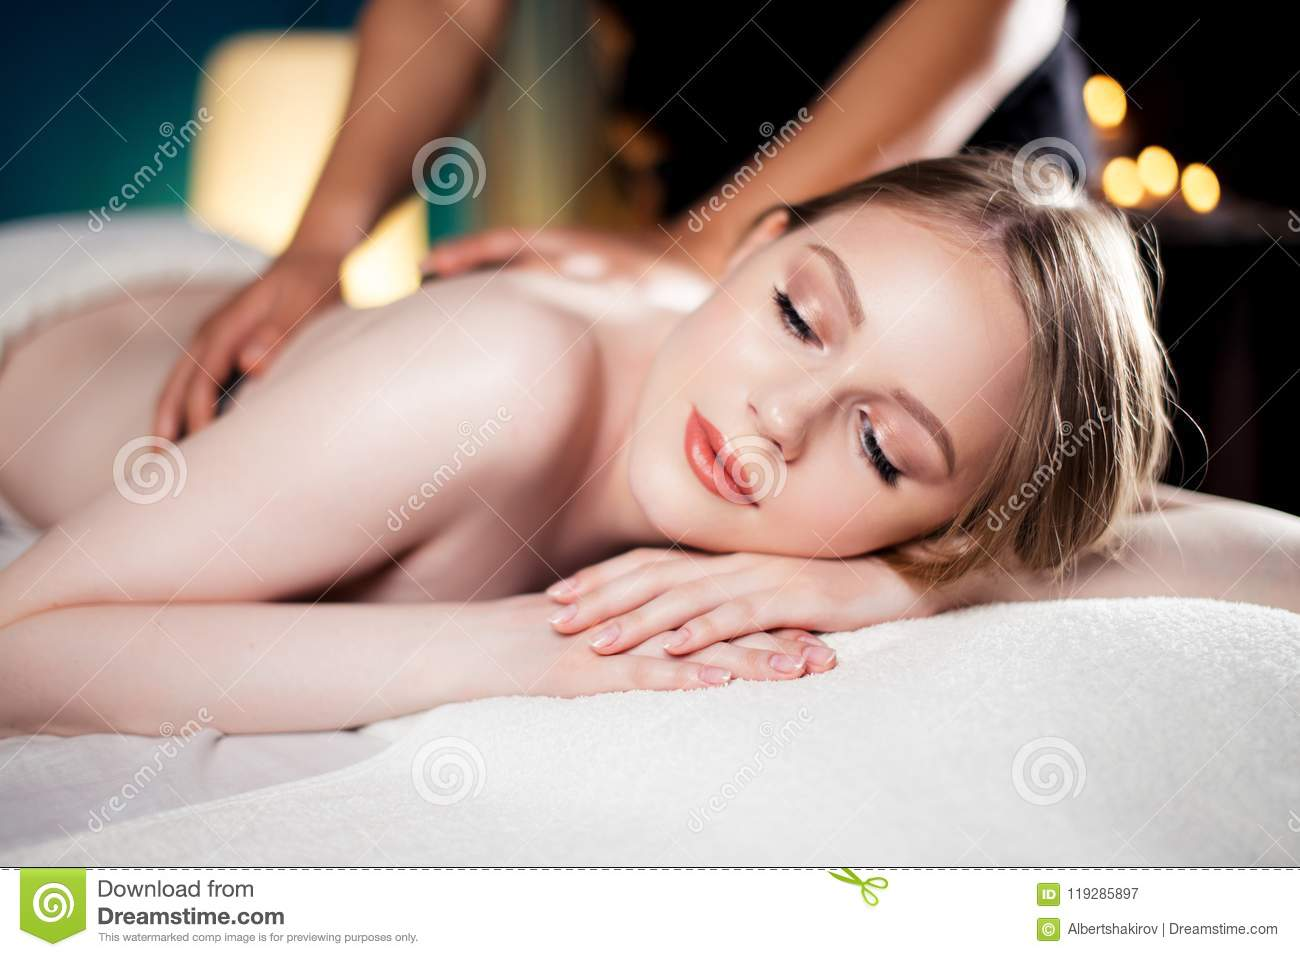 Attractive, young and healthy girl lying on massage bed in spa salon  receiving hot stone massage as pleasant bonus to the main Total Body  Oriental Massage.